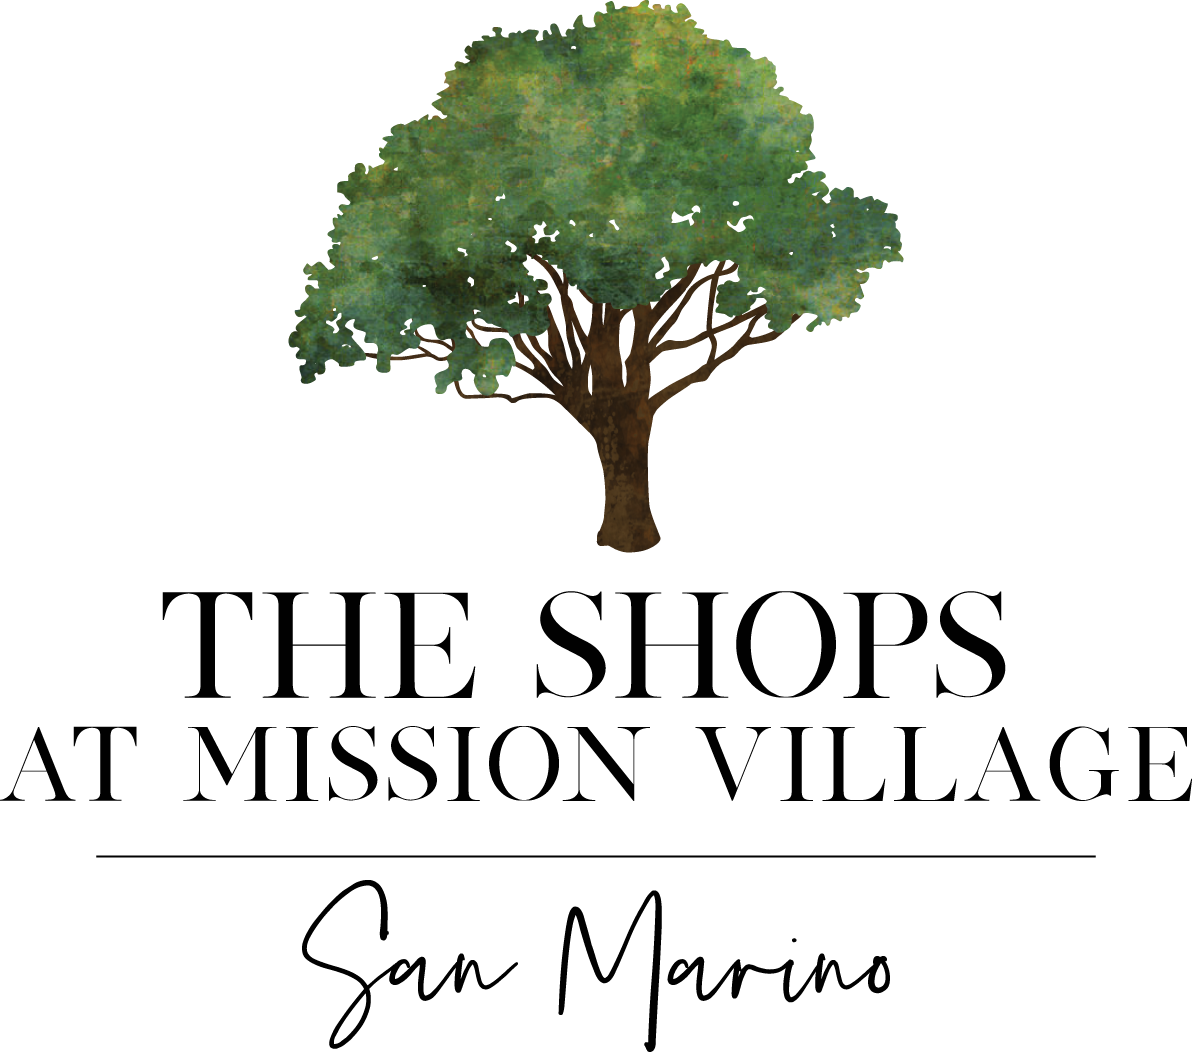 THE SHOPS AT MISSION VILLAGE